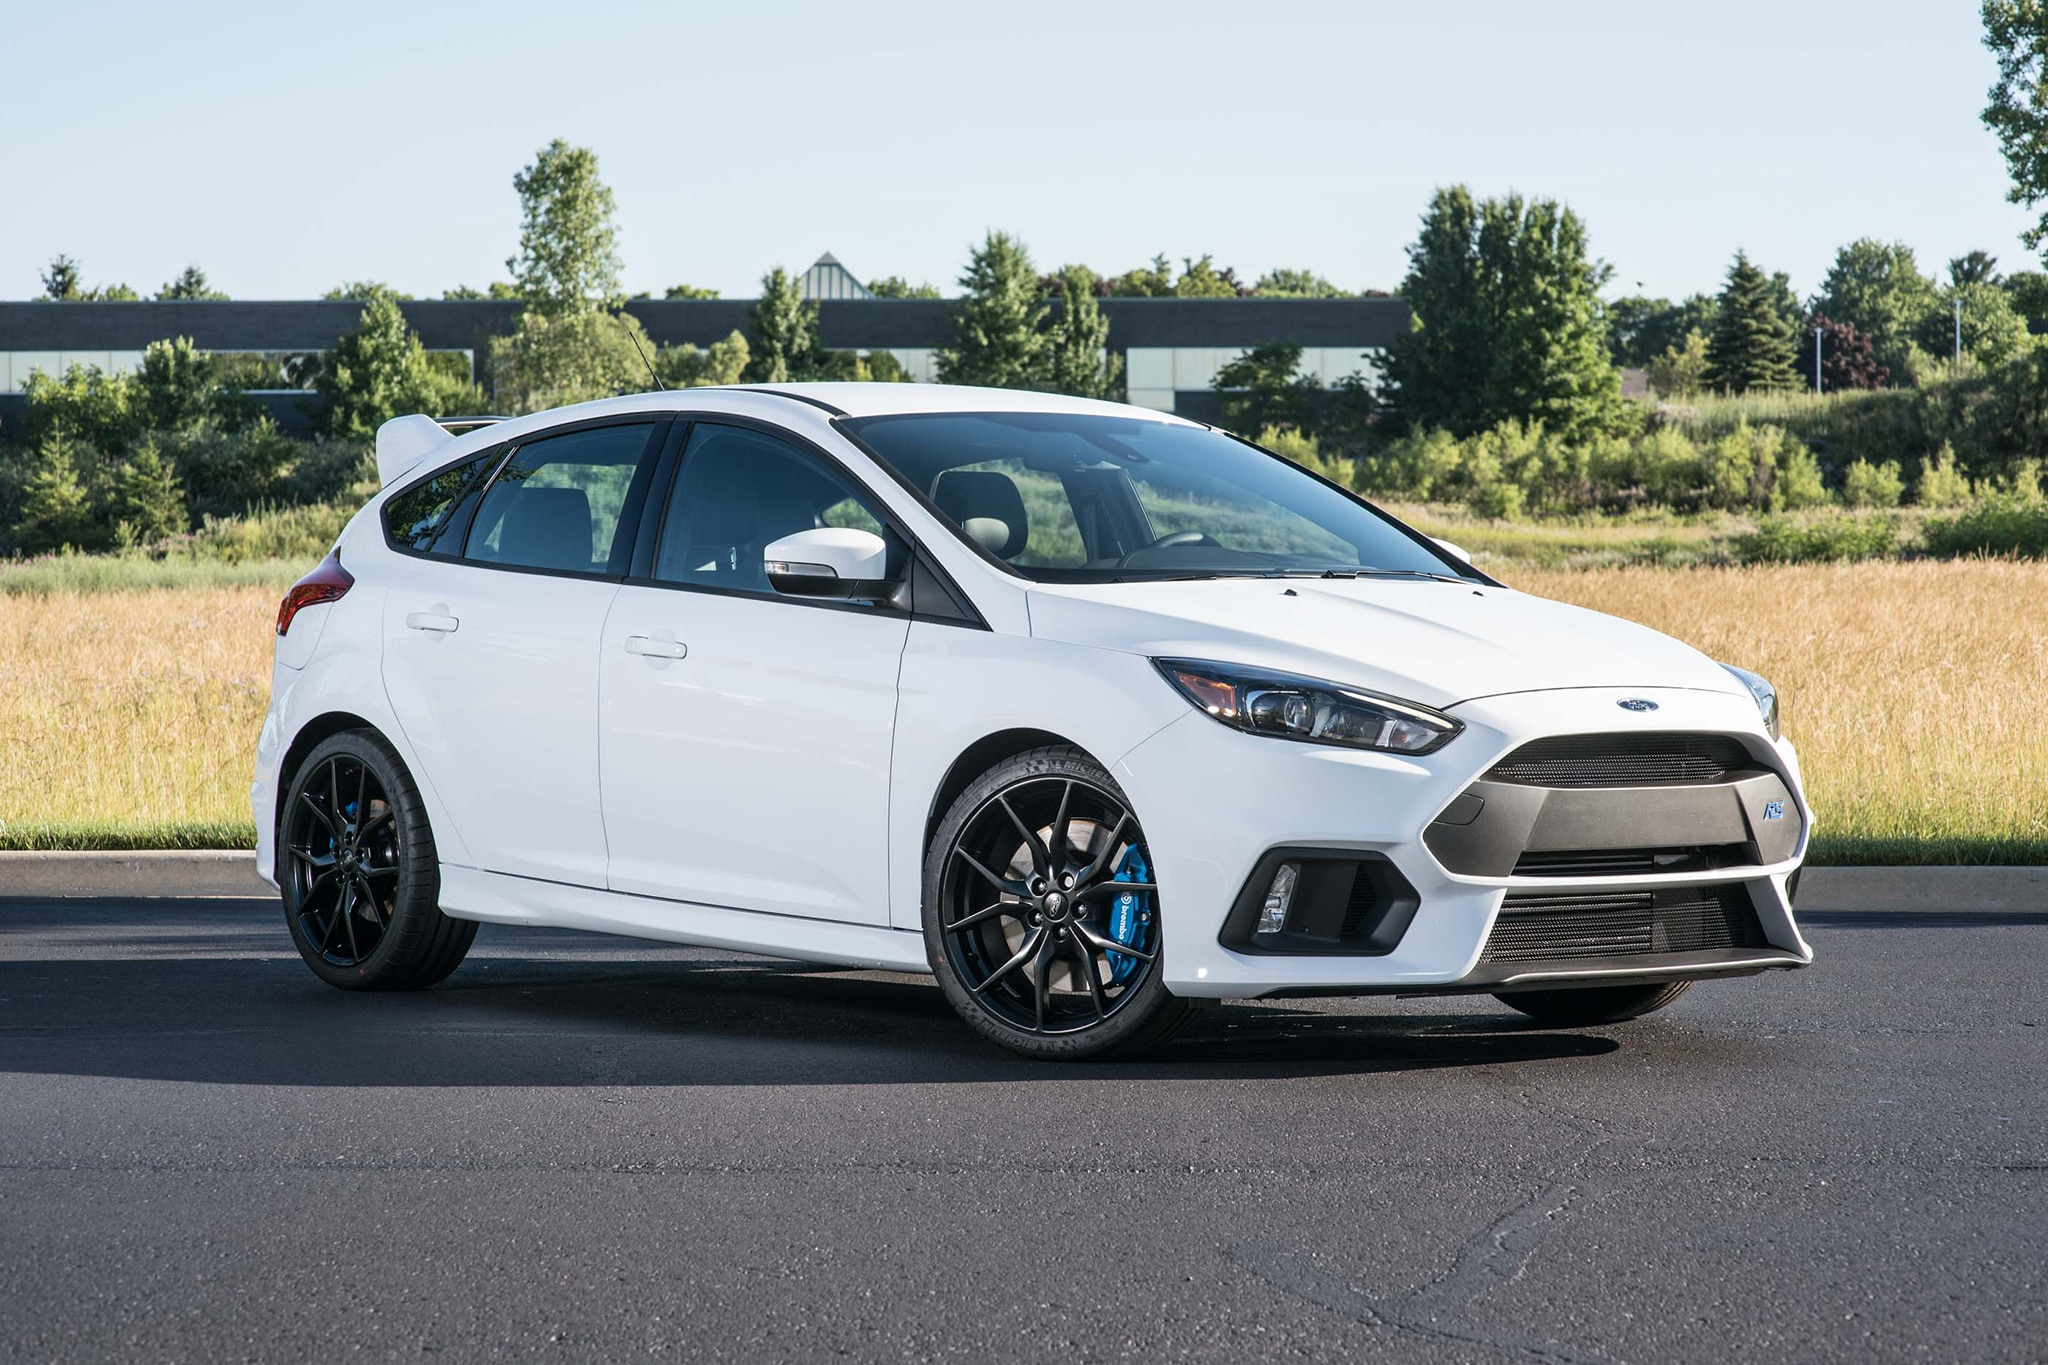 focus rs ford review stance auto reviews sunset price canadian